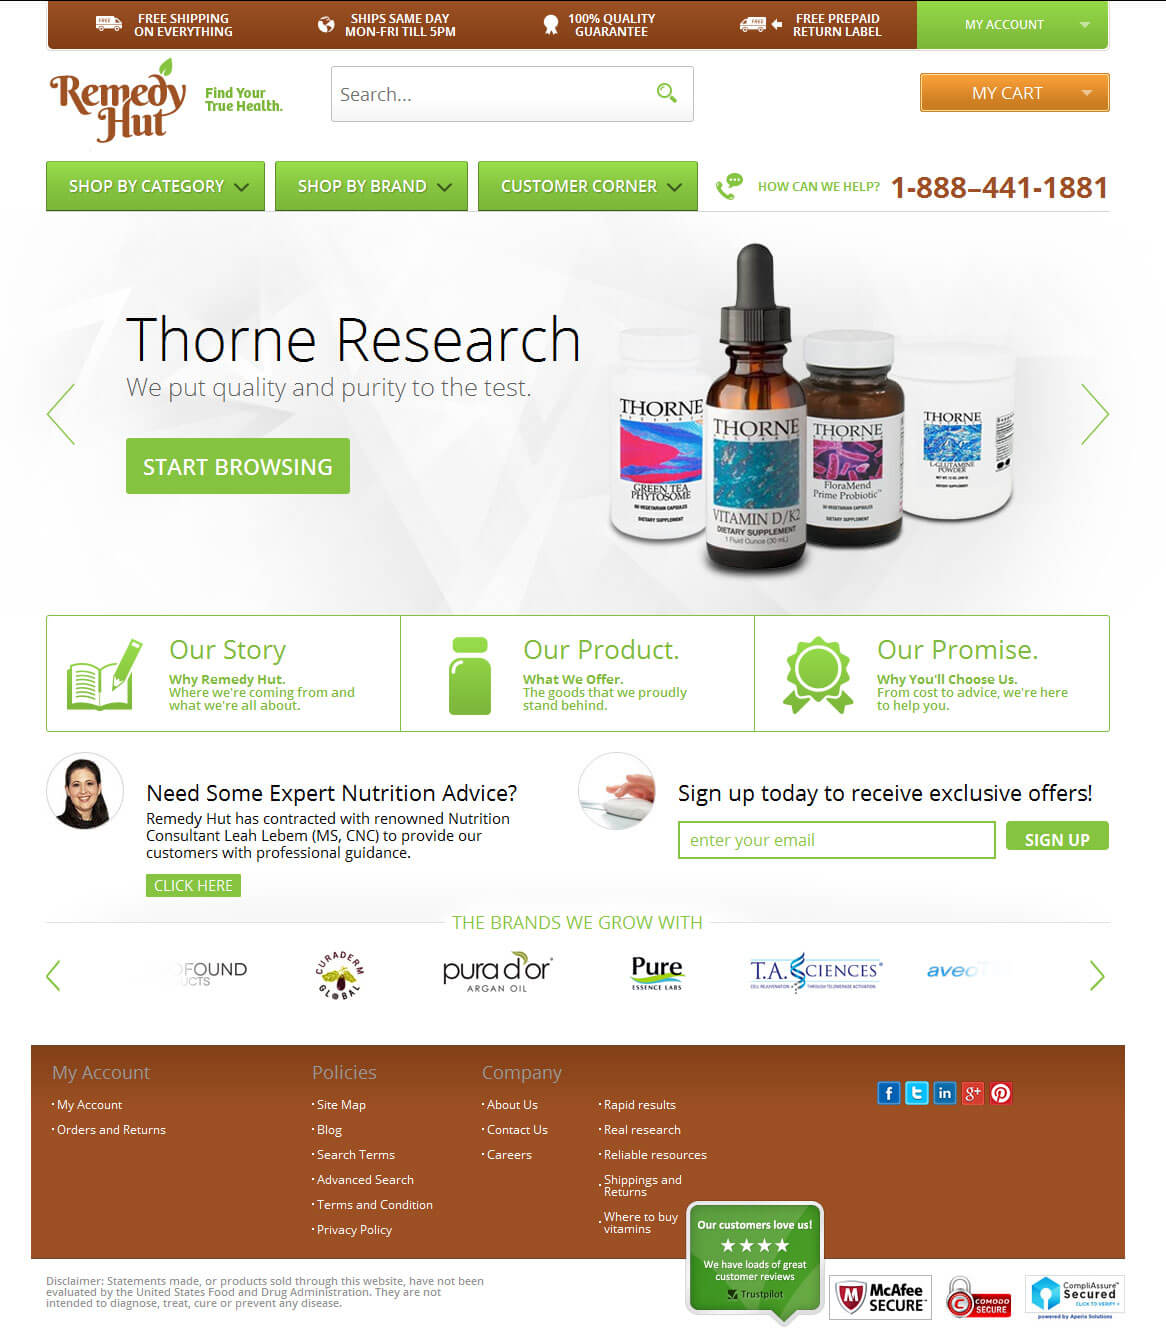 Magento Based eCommerce Store for Selling Home Remedies